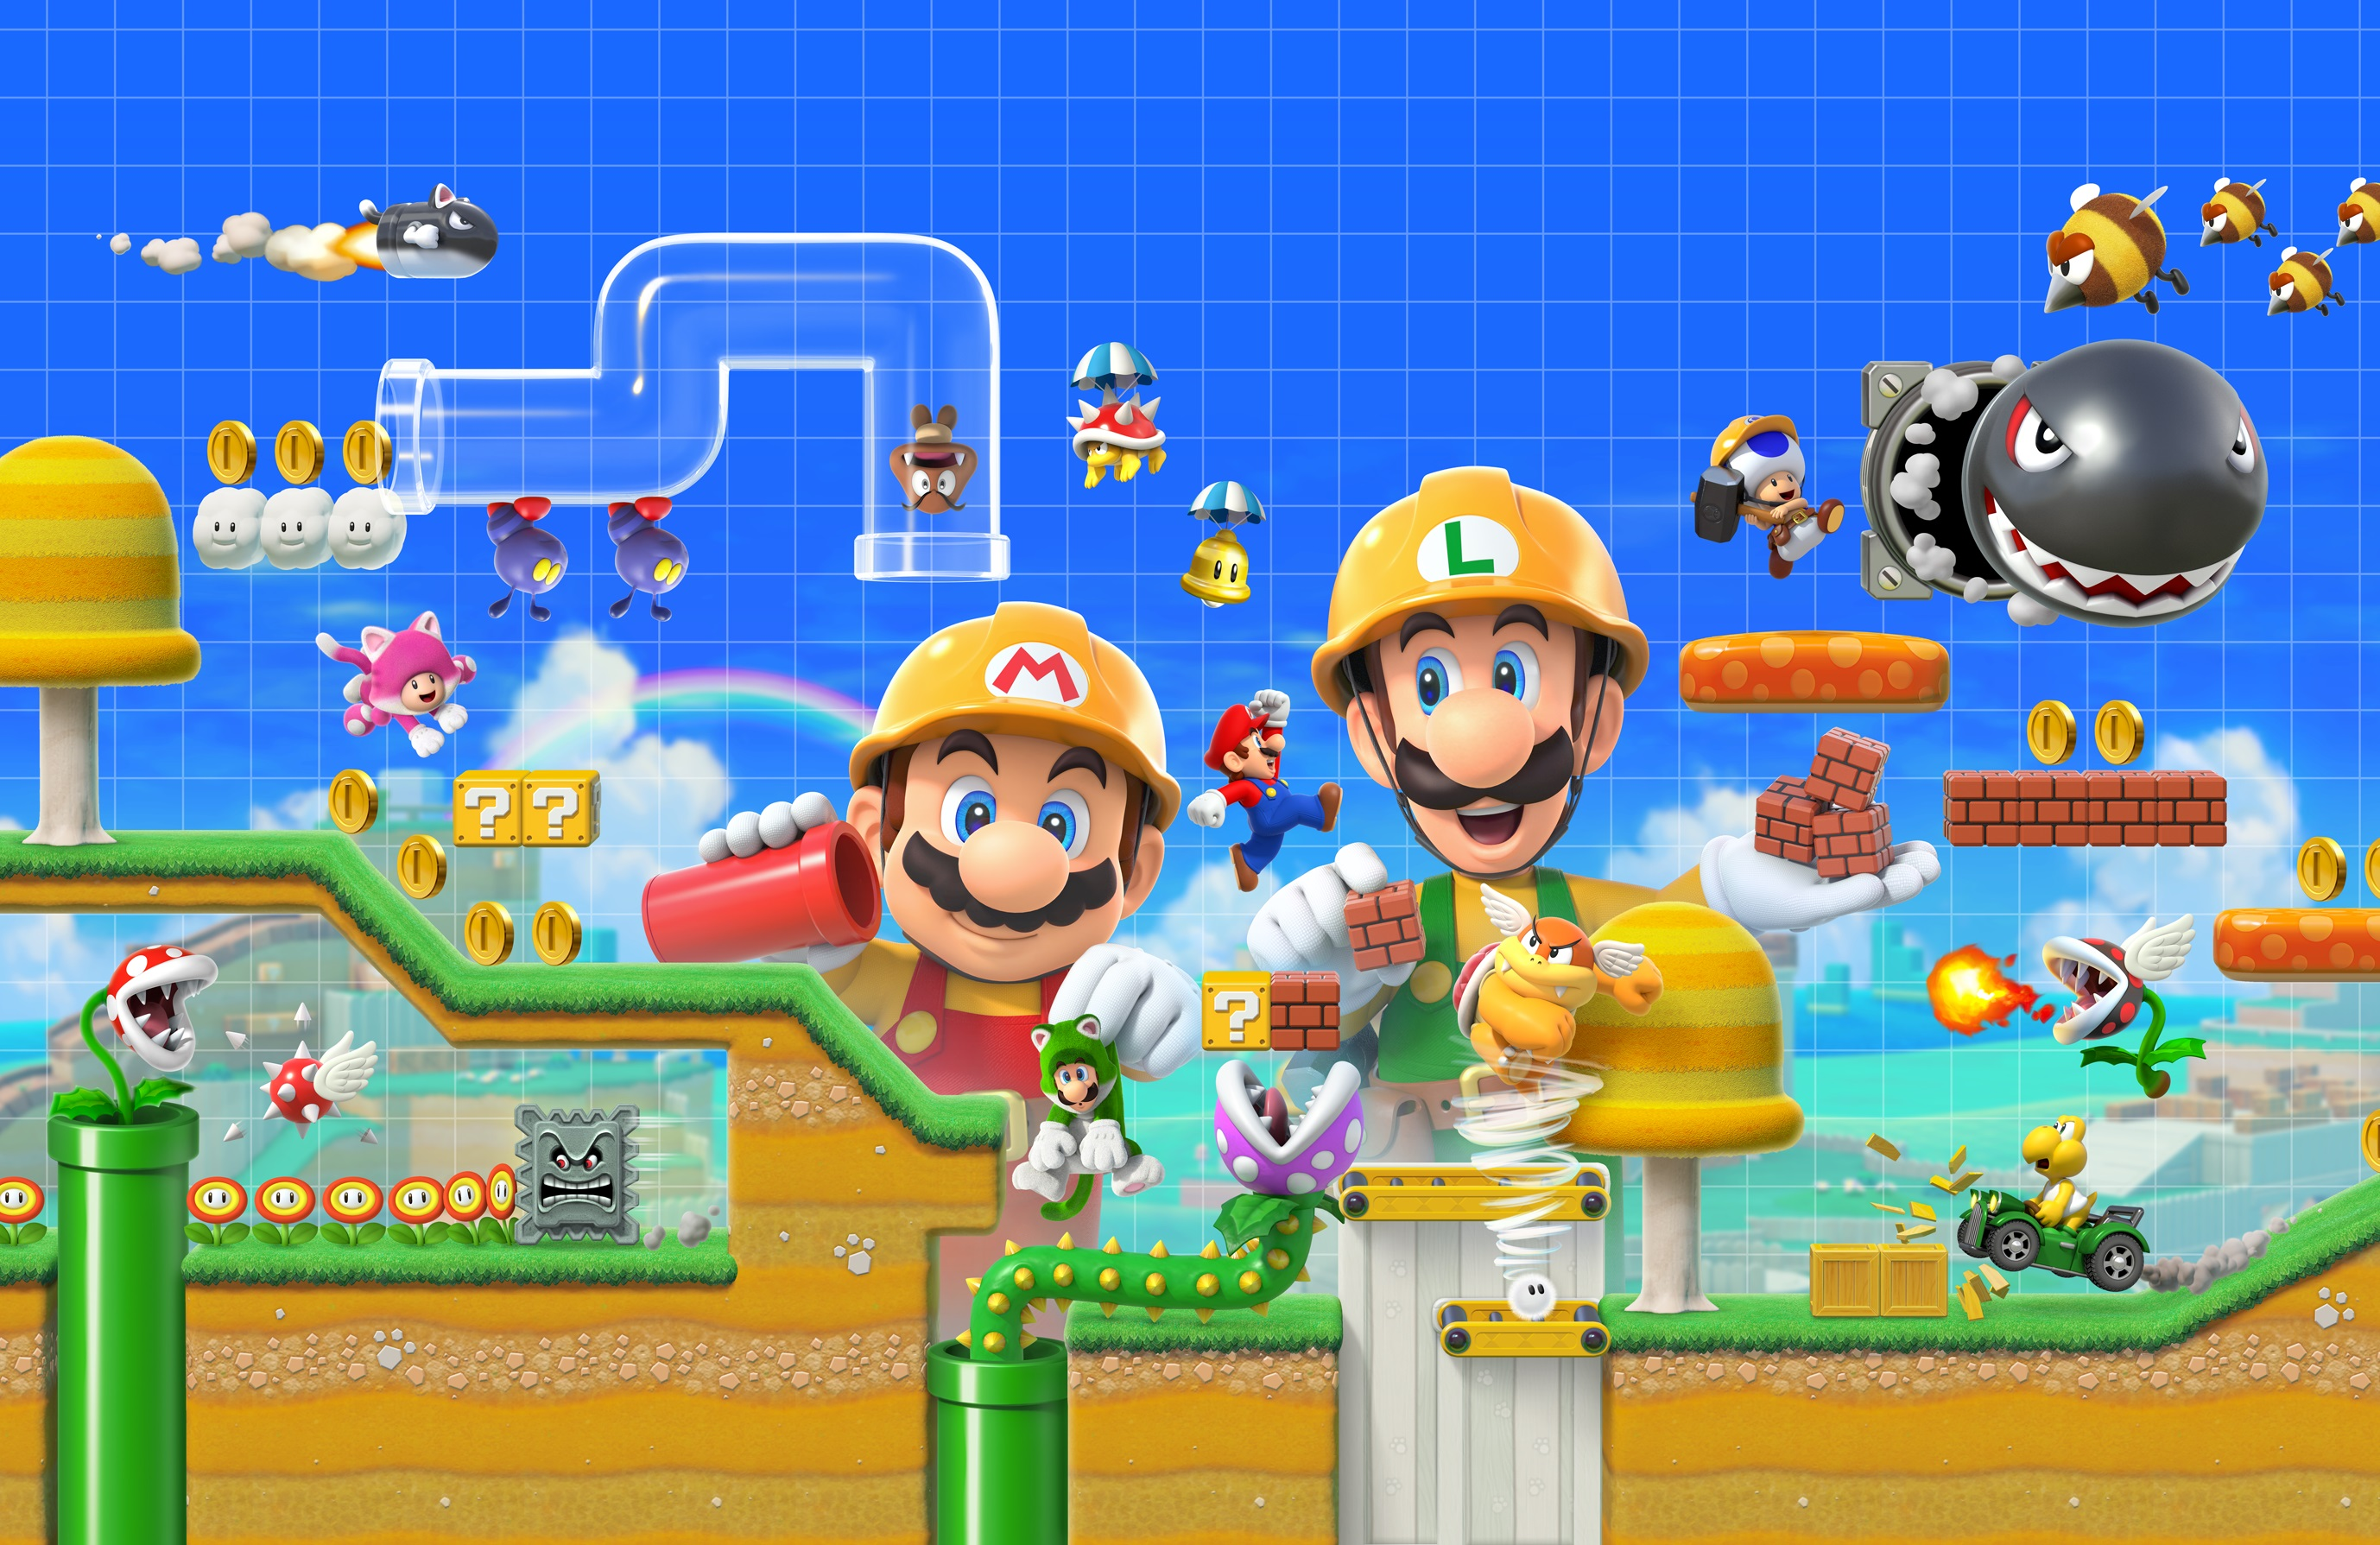 Maybe this is the release date of Super Mario Maker 2, maybe it isn't